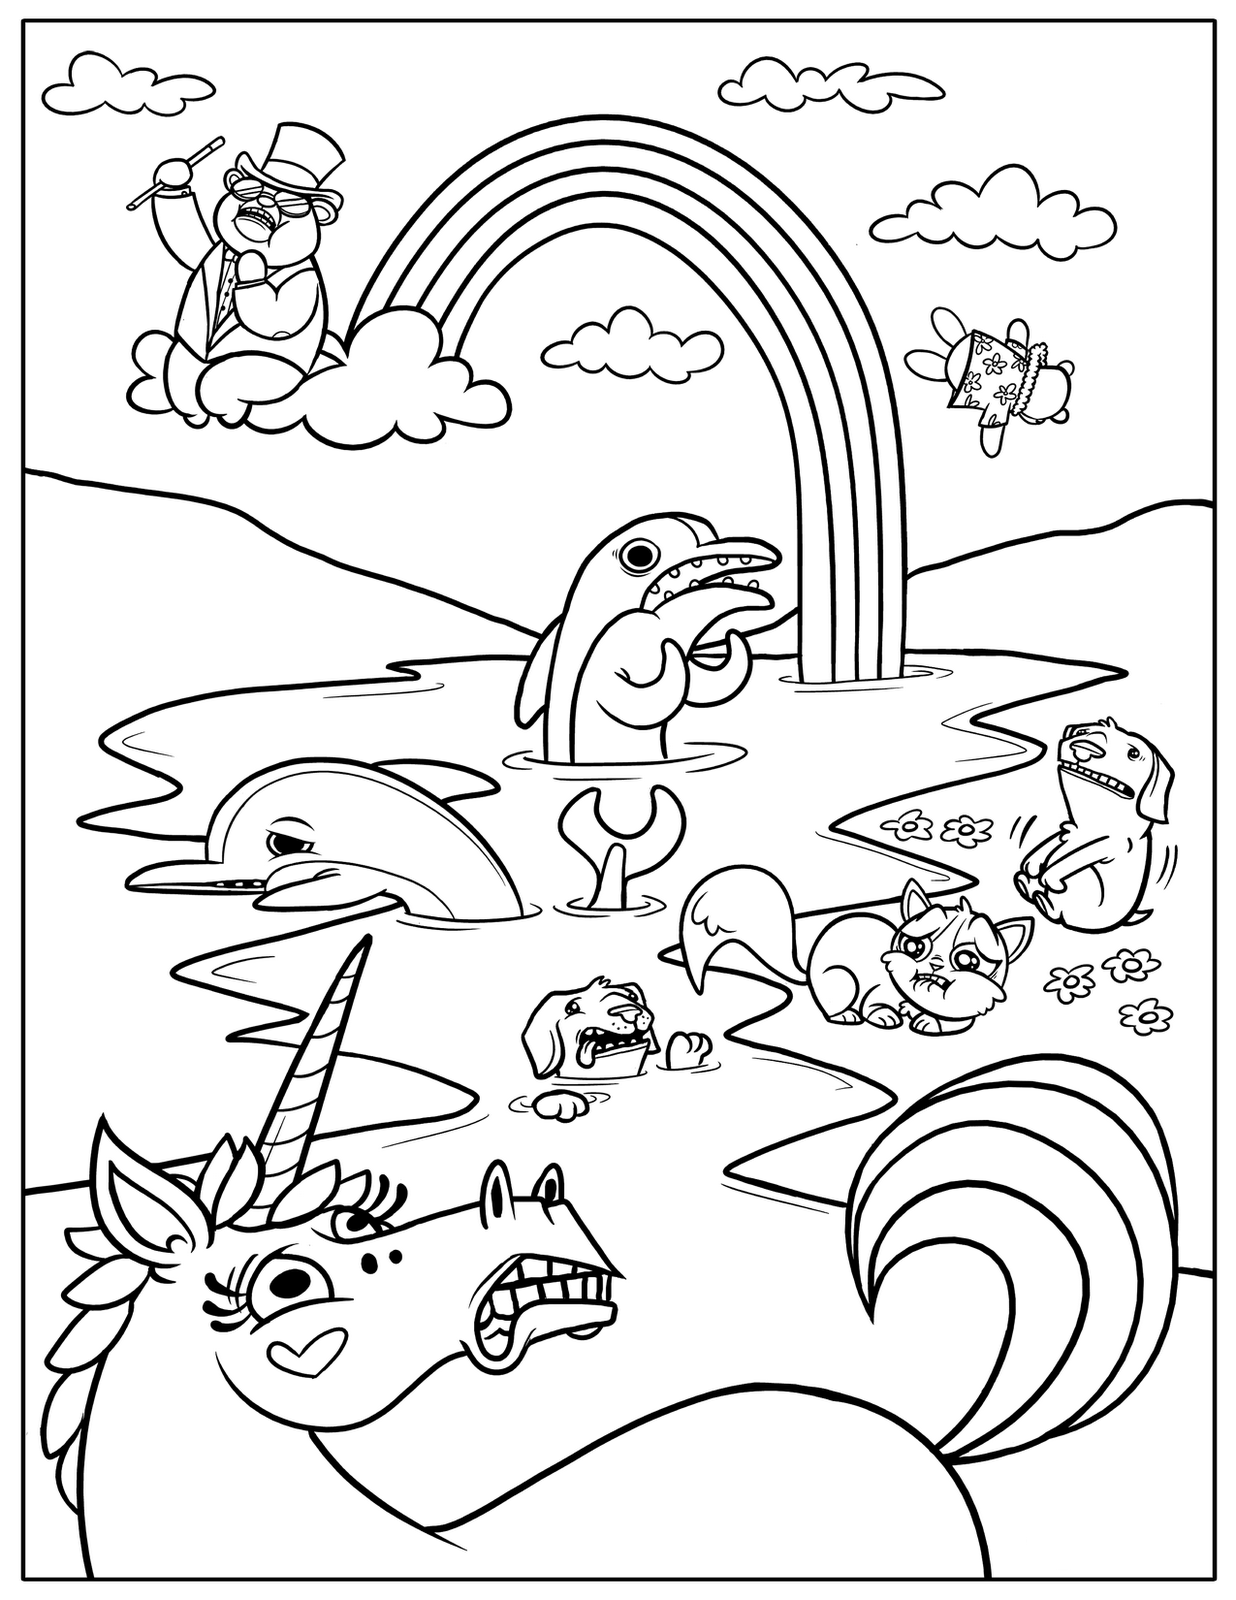 coloring page websites disney coloring pages to download and print for free websites coloring page